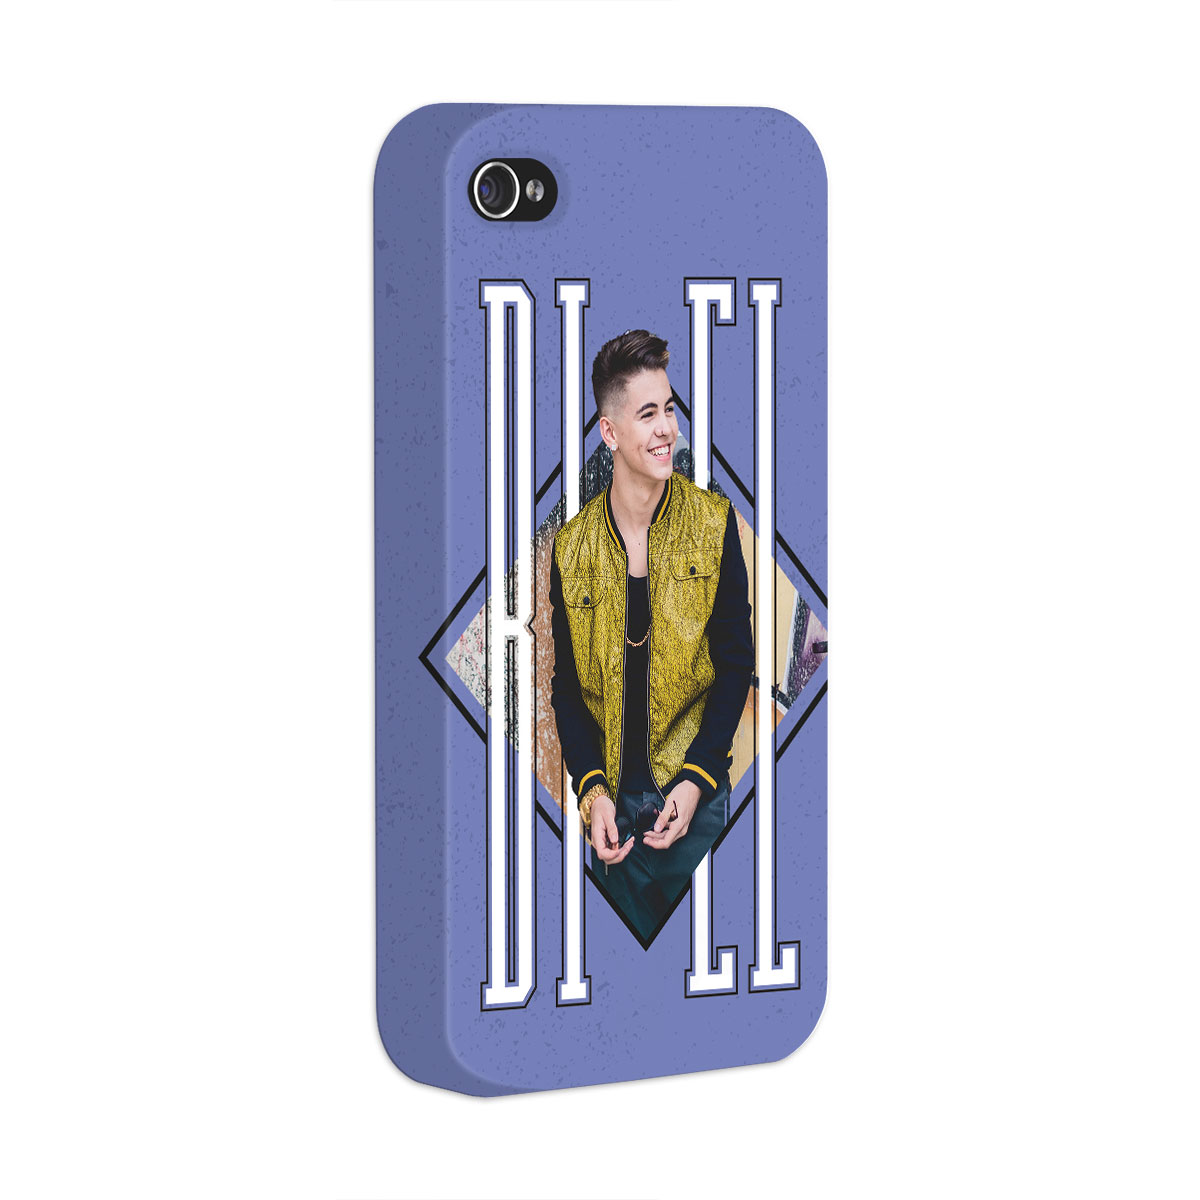 Capa para iPhone 4/4S Biel Type